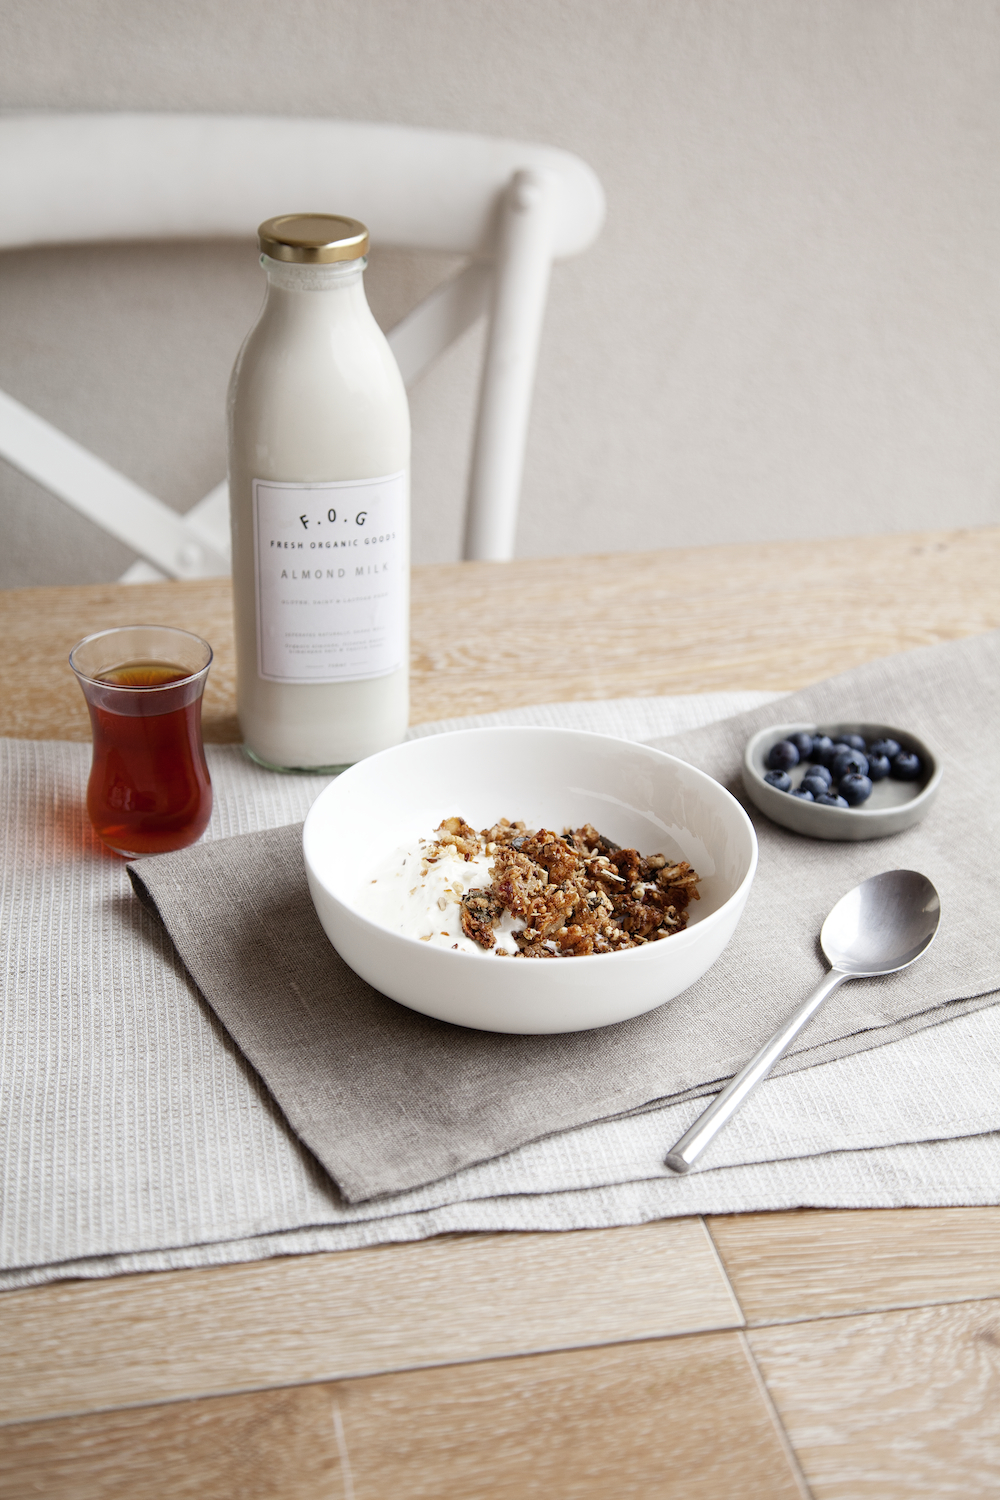 Photography by    Elisa Watson . Pictured:  Fresh Organic Goods  Almond Milk.